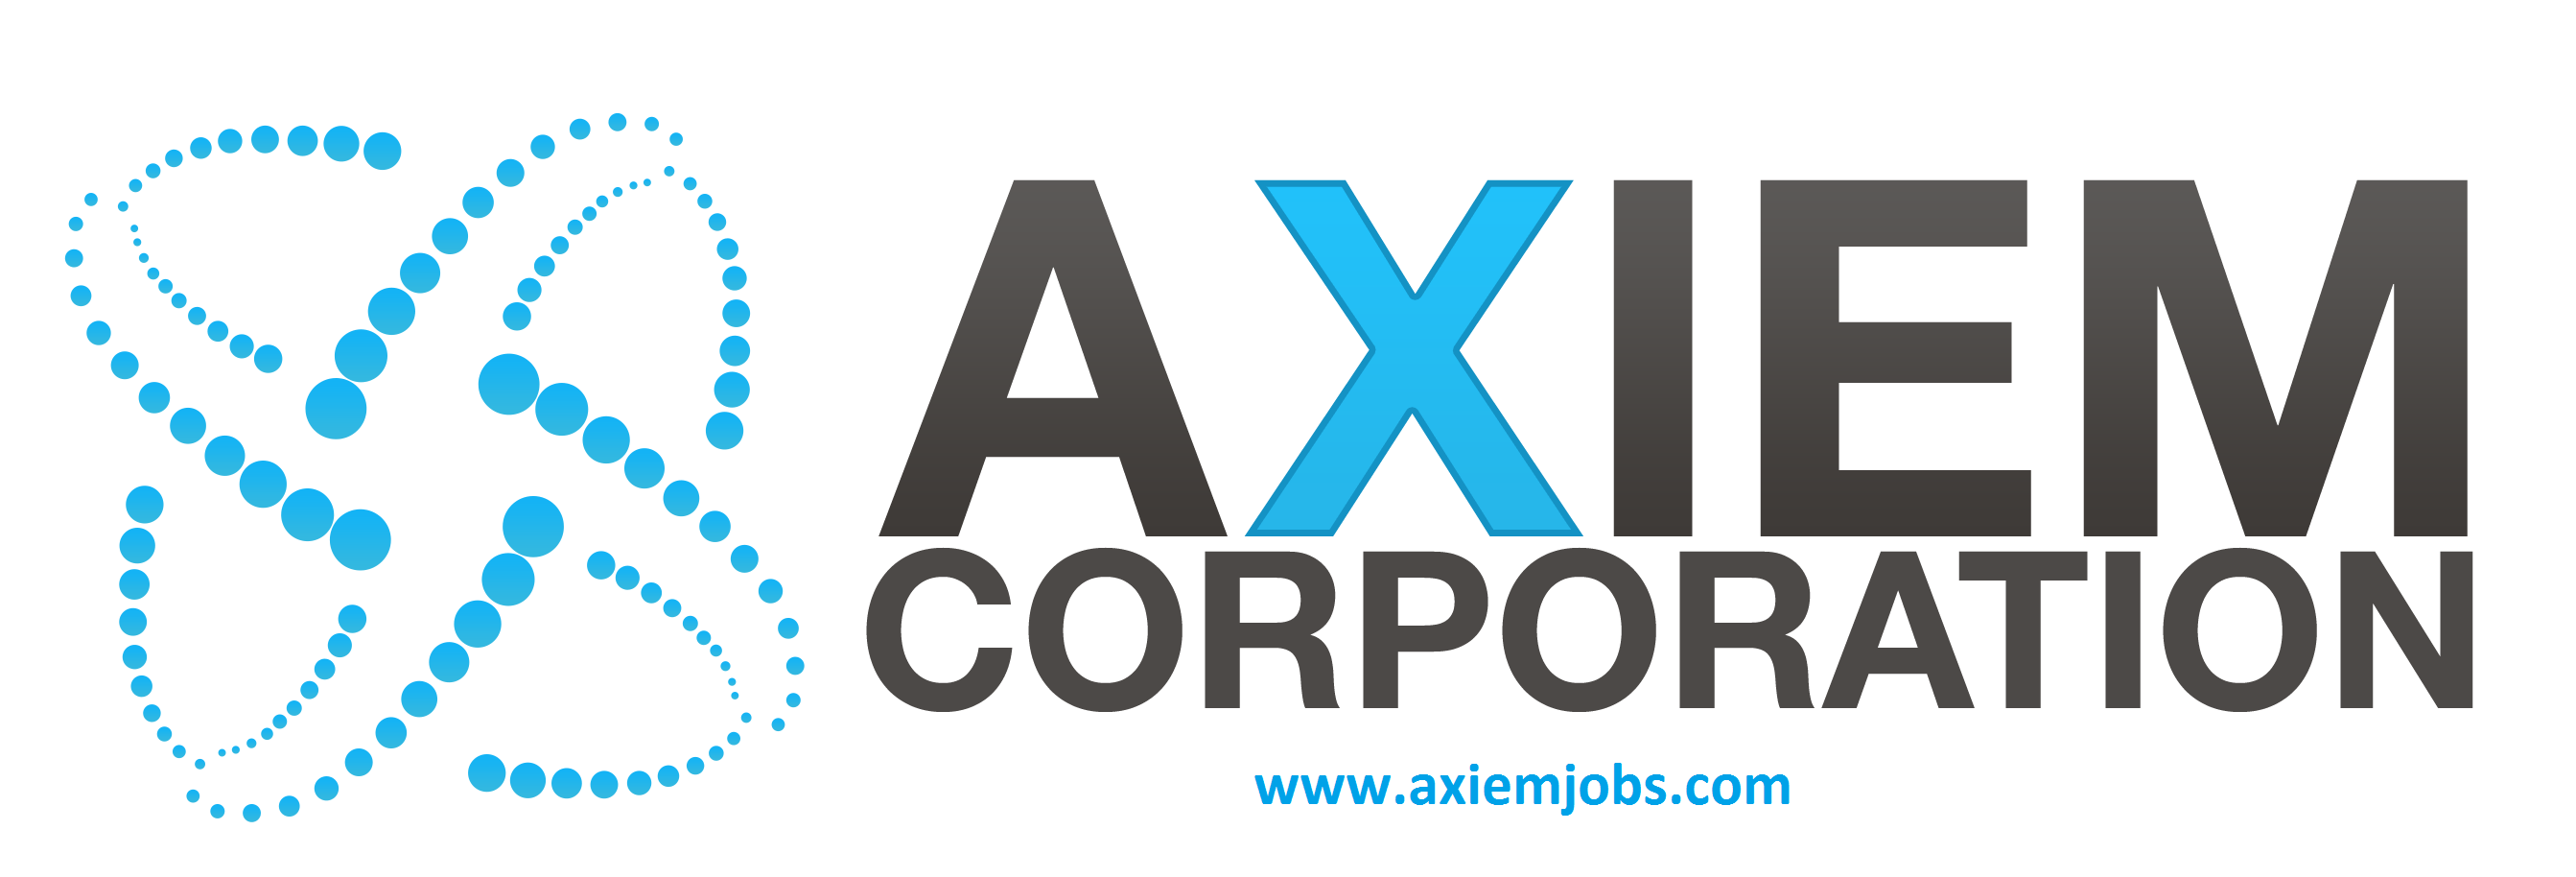 axiem-corporationphotos-1